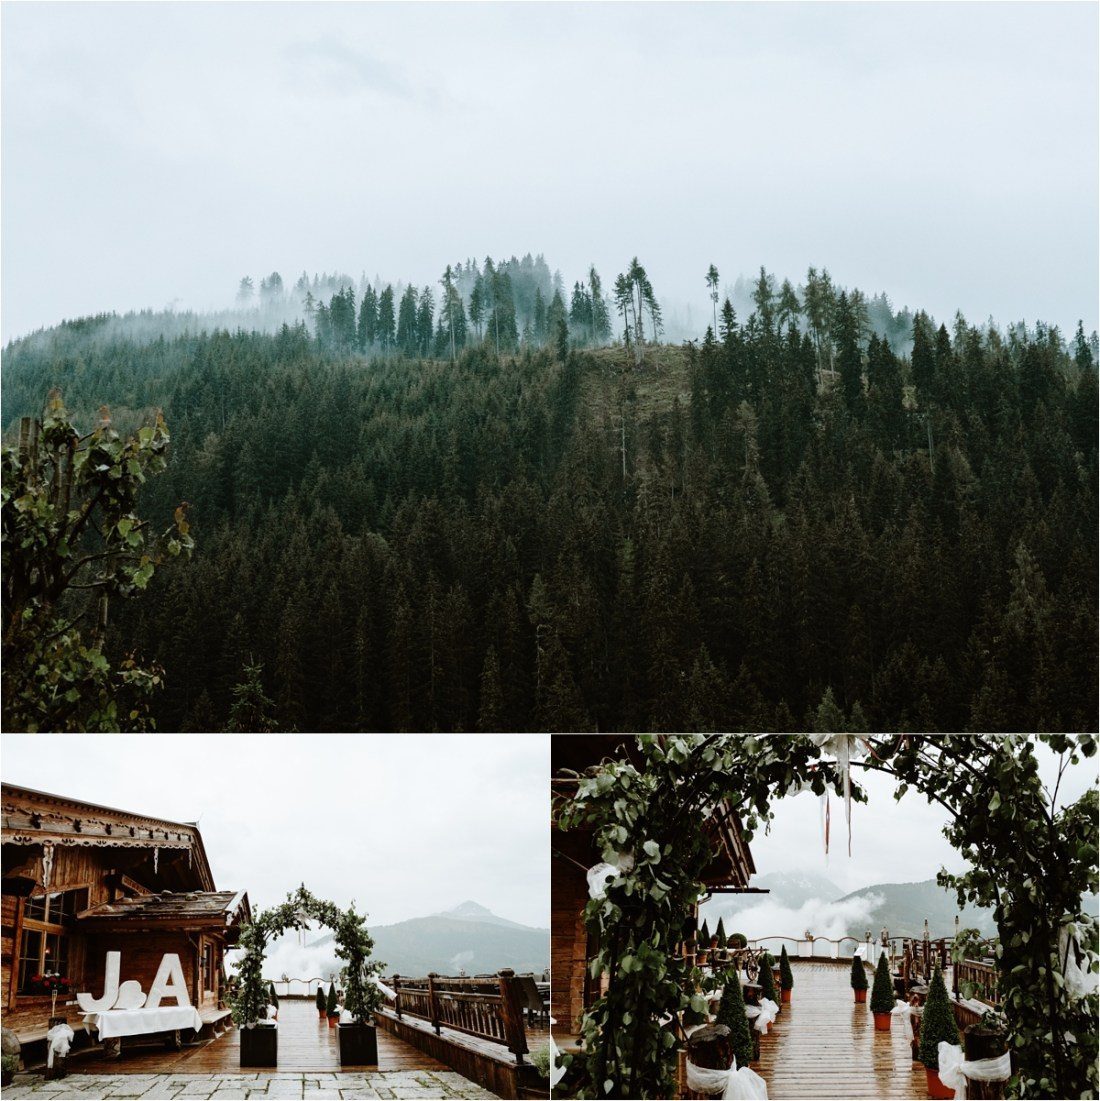 The perfect setting for a mountain chalet wedding at the Rössl Alm in Gerlos, Austria. Photos by Wild Connections Photography